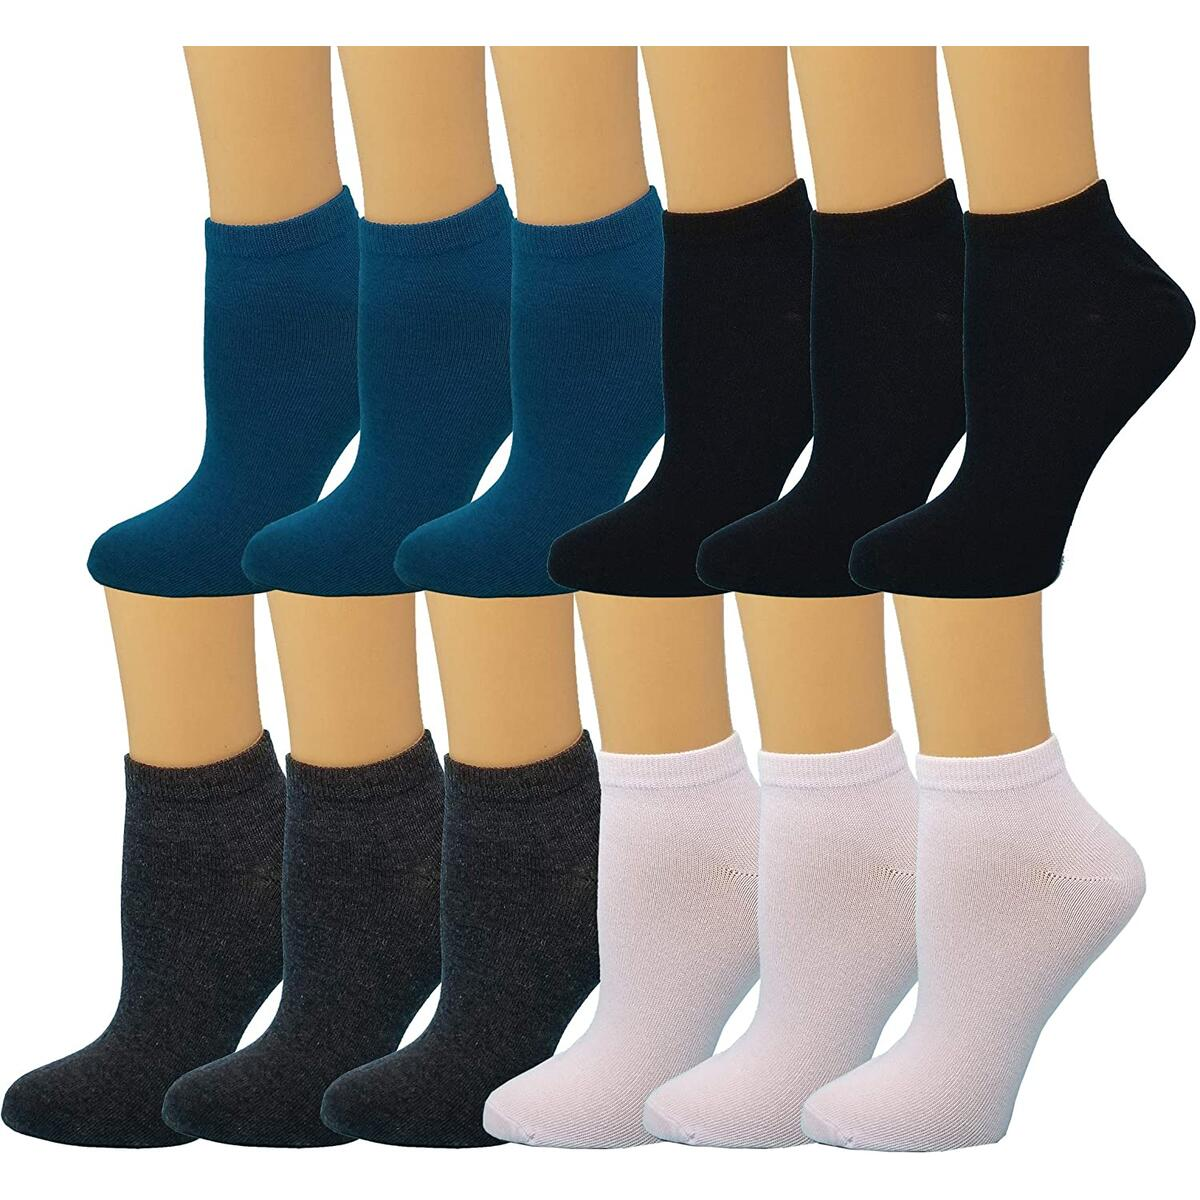 Debra Weitzner Womens Cotton Ankle Socks 12 Pairs Low-Cut Socks Colorful Casual No-Show Socks